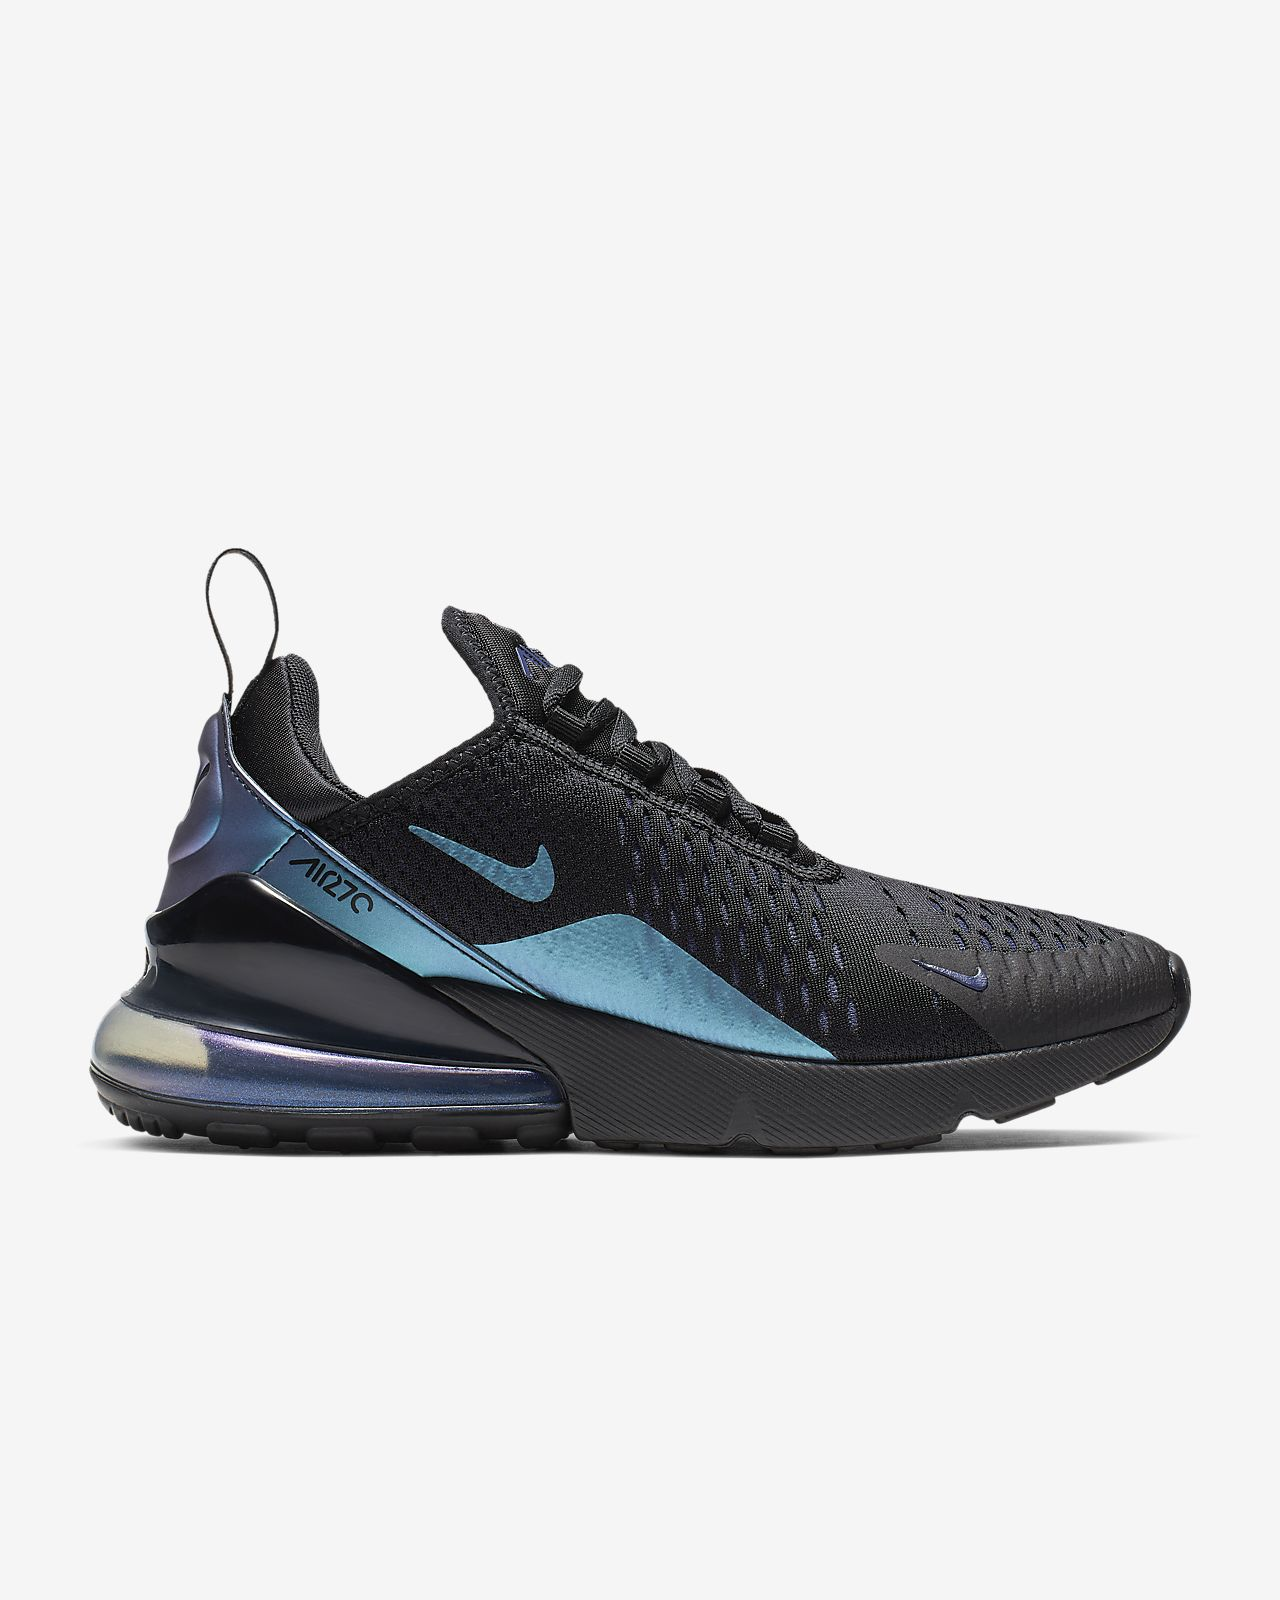 new arrival 099be 1e178 ... Nike Air Max 270 Womens Shoe